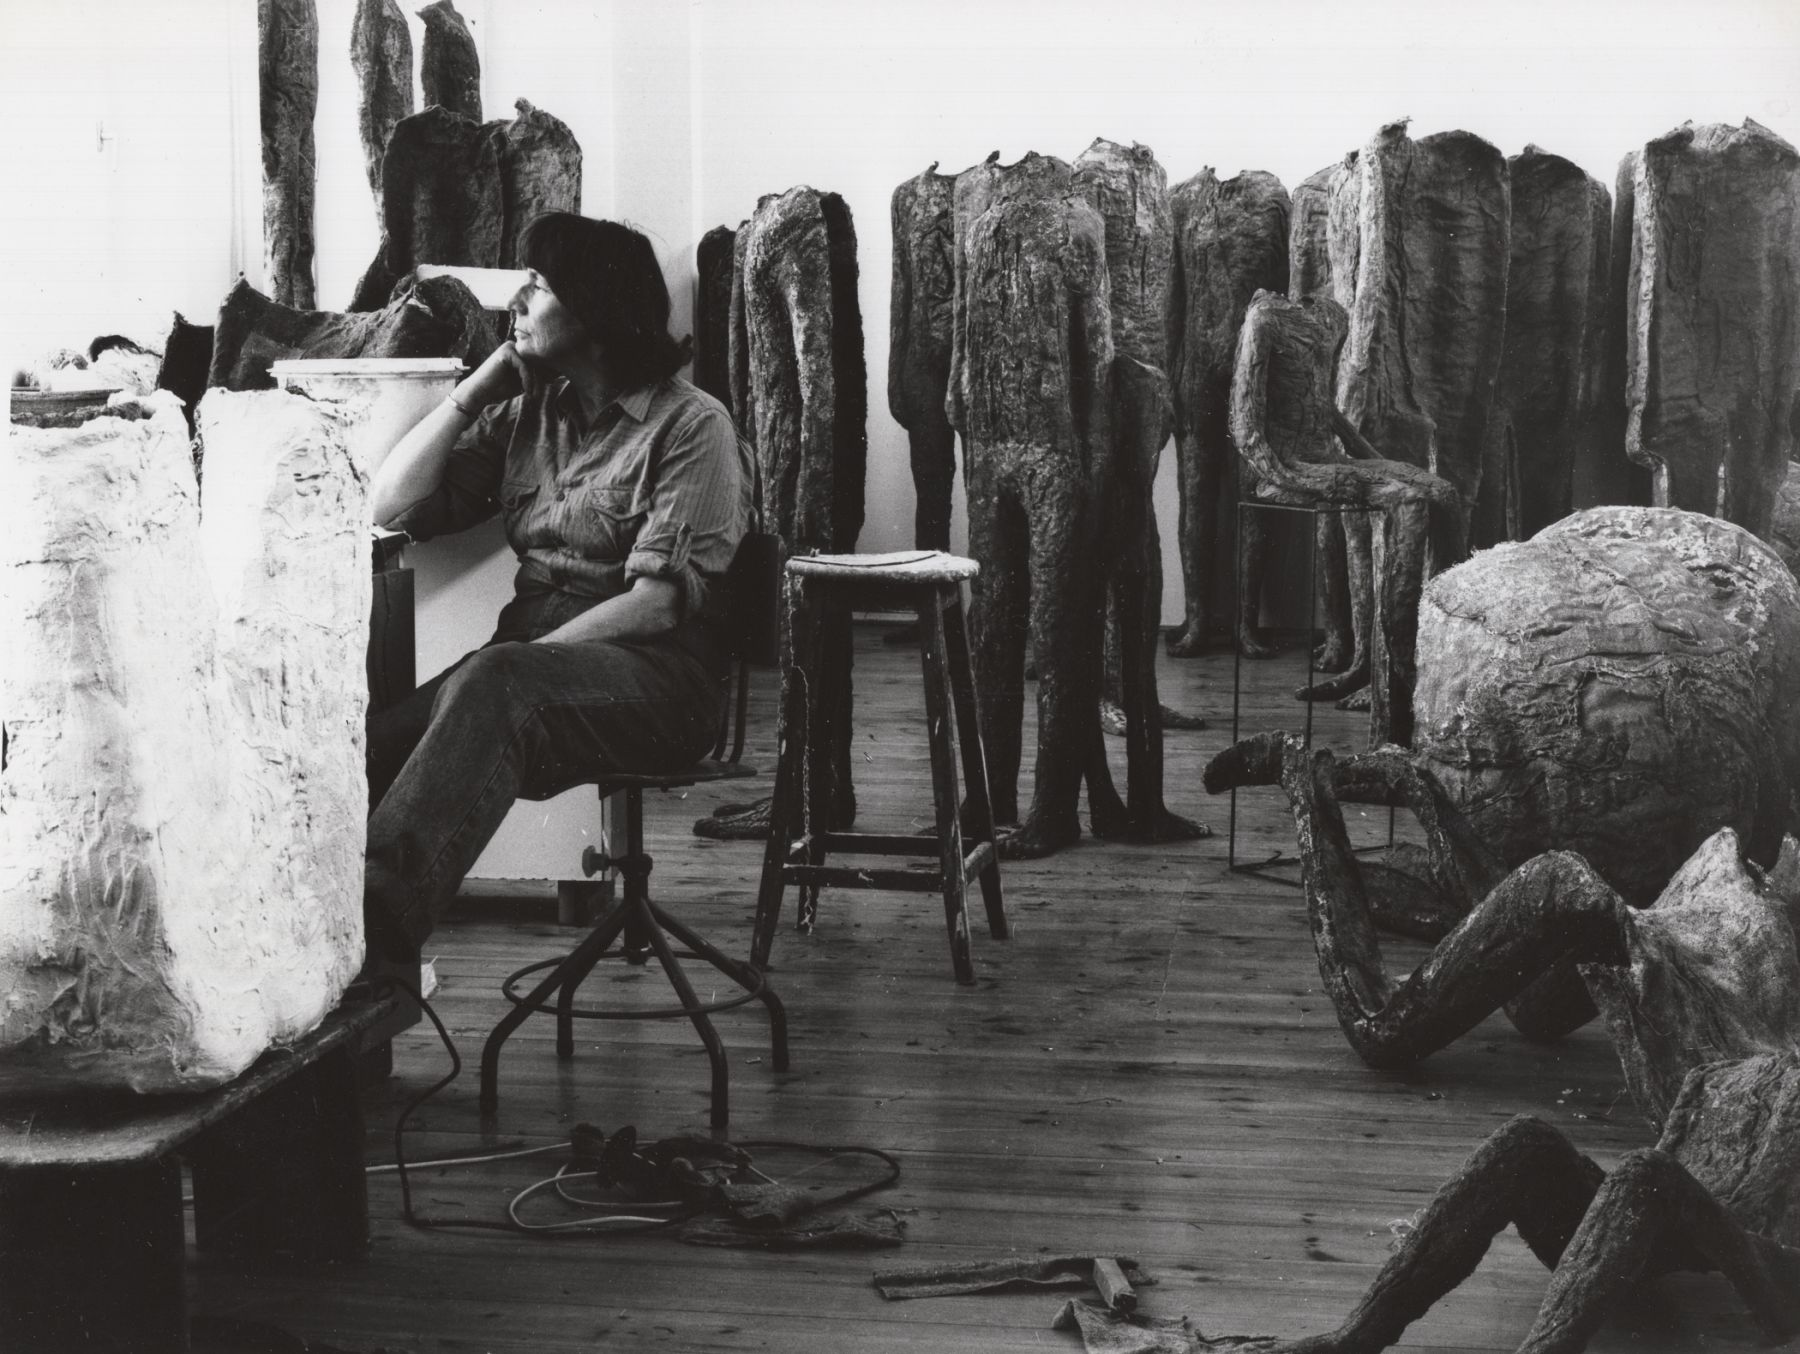 Black and white photographic portrait of Magdalena Abakanowicz in her studio surrounded by sculptures